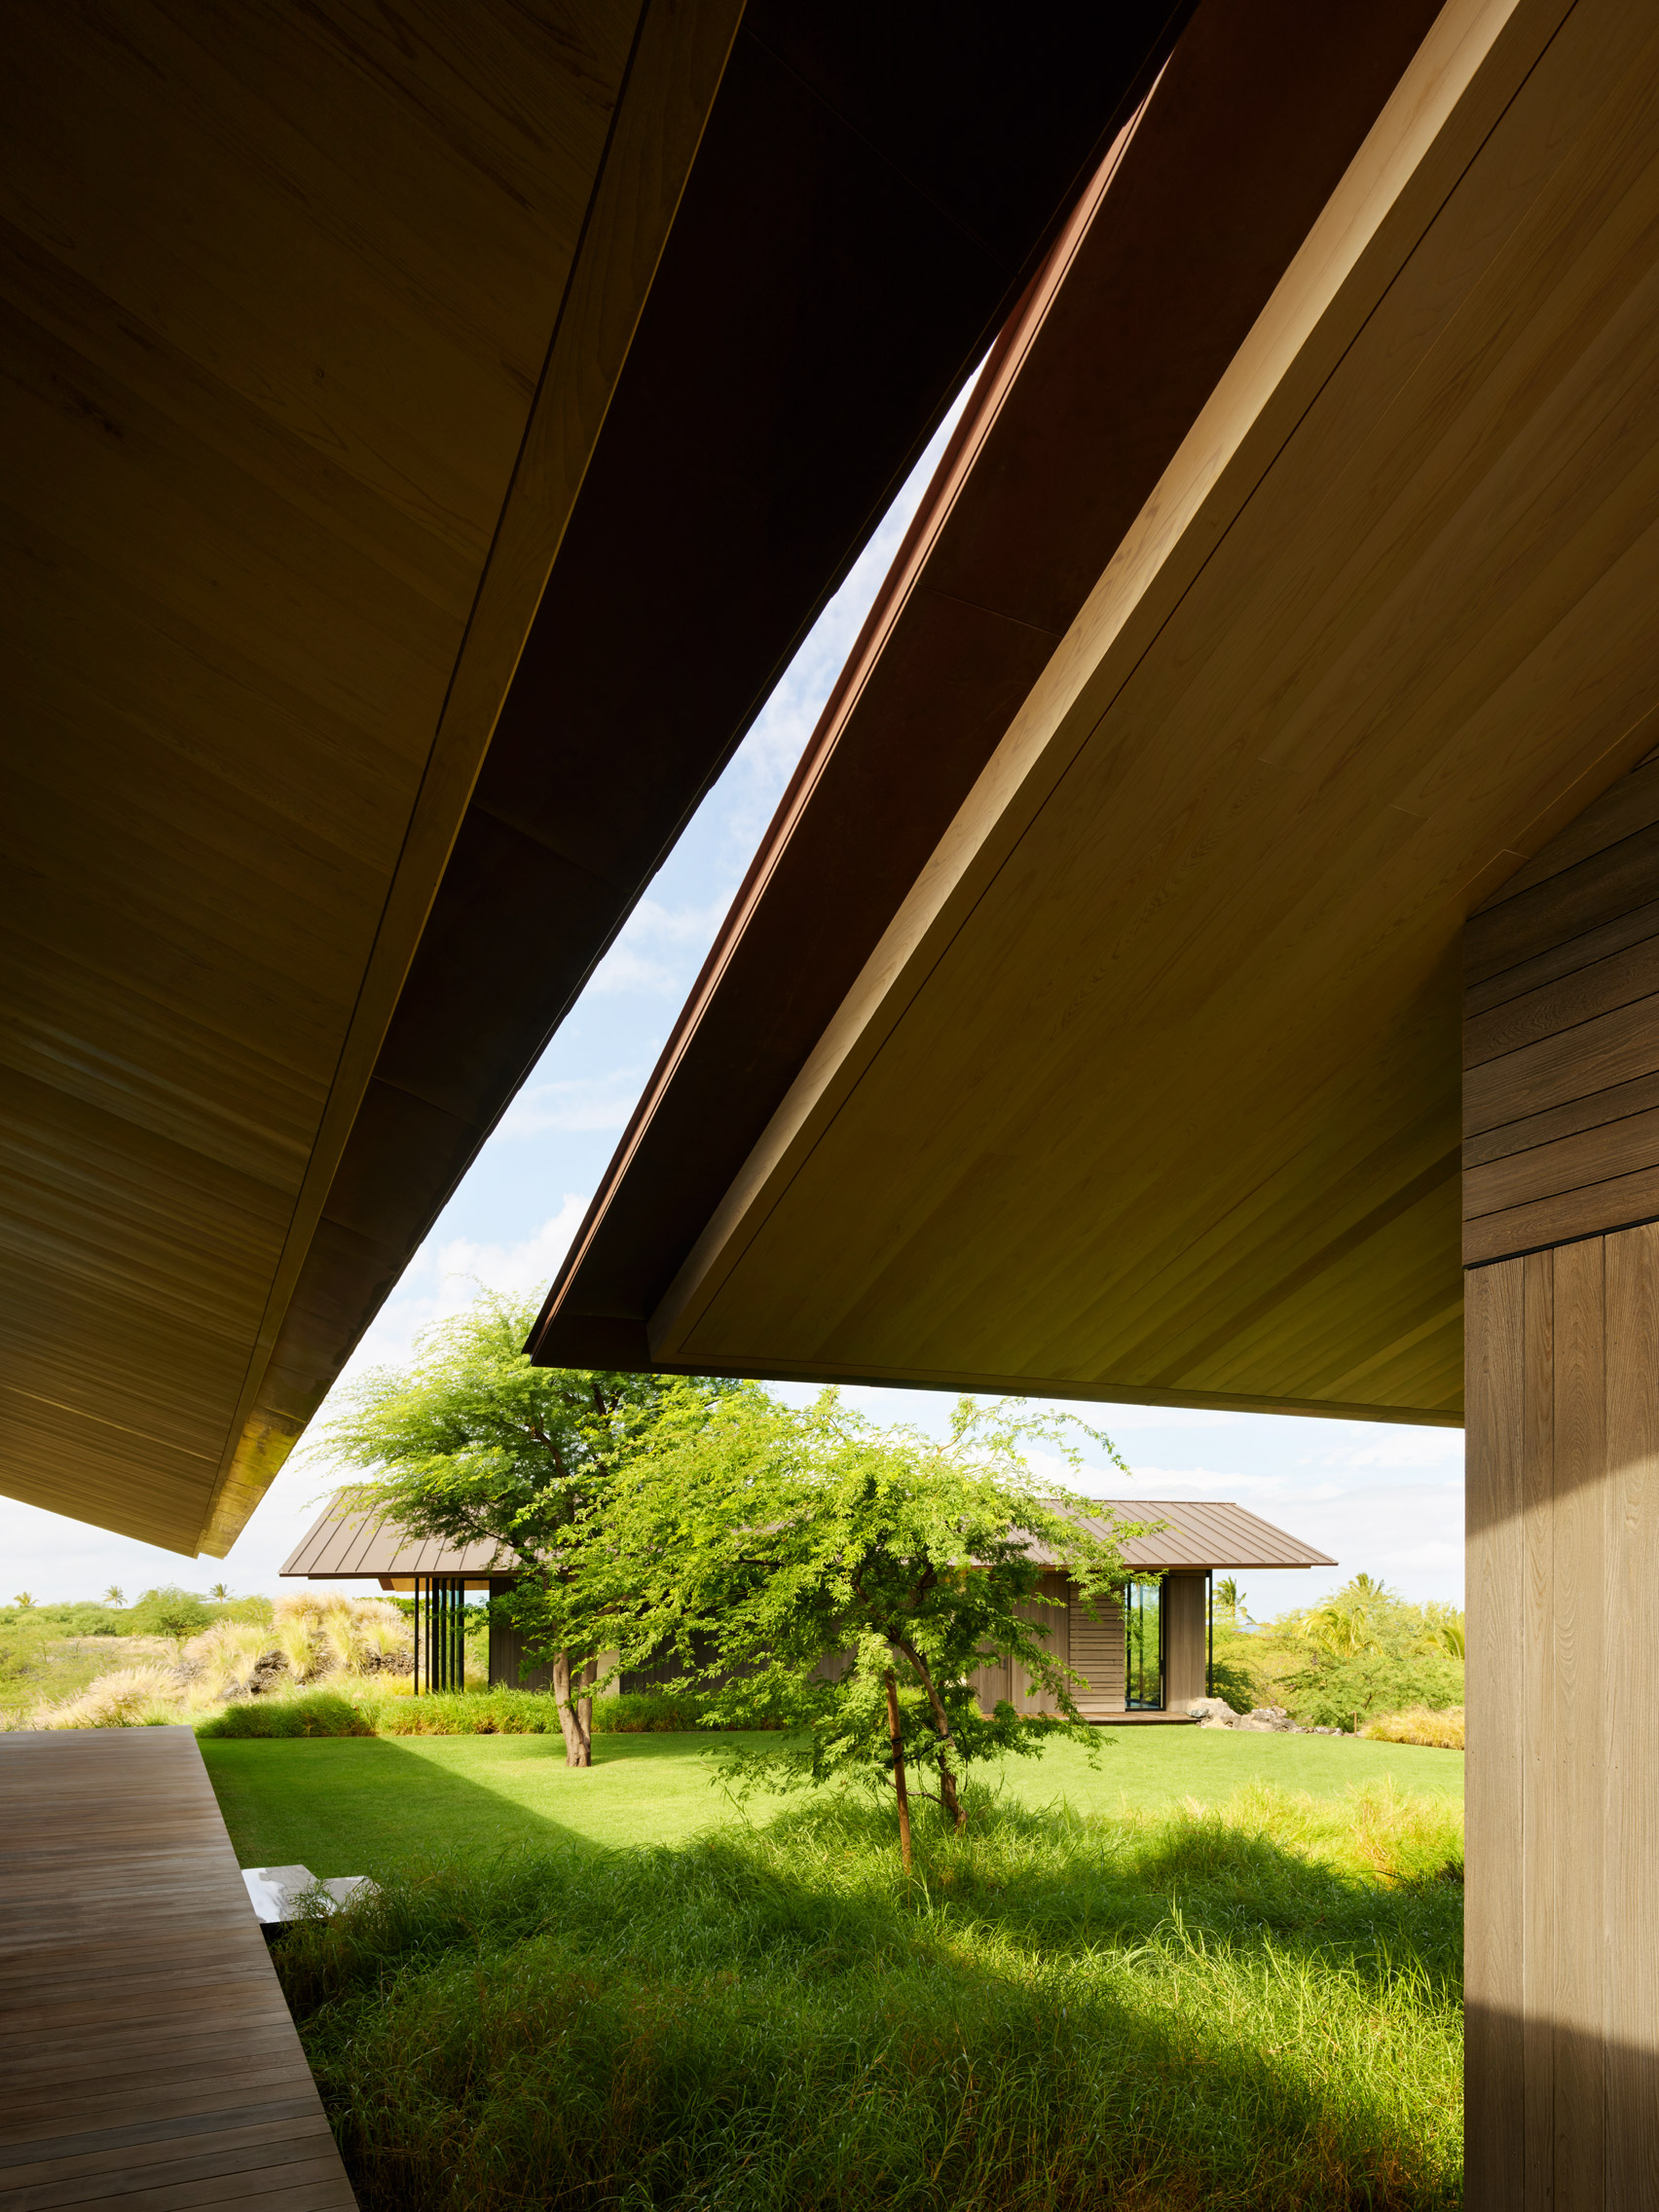 View of Hale Mau'u from under overhanging roofs